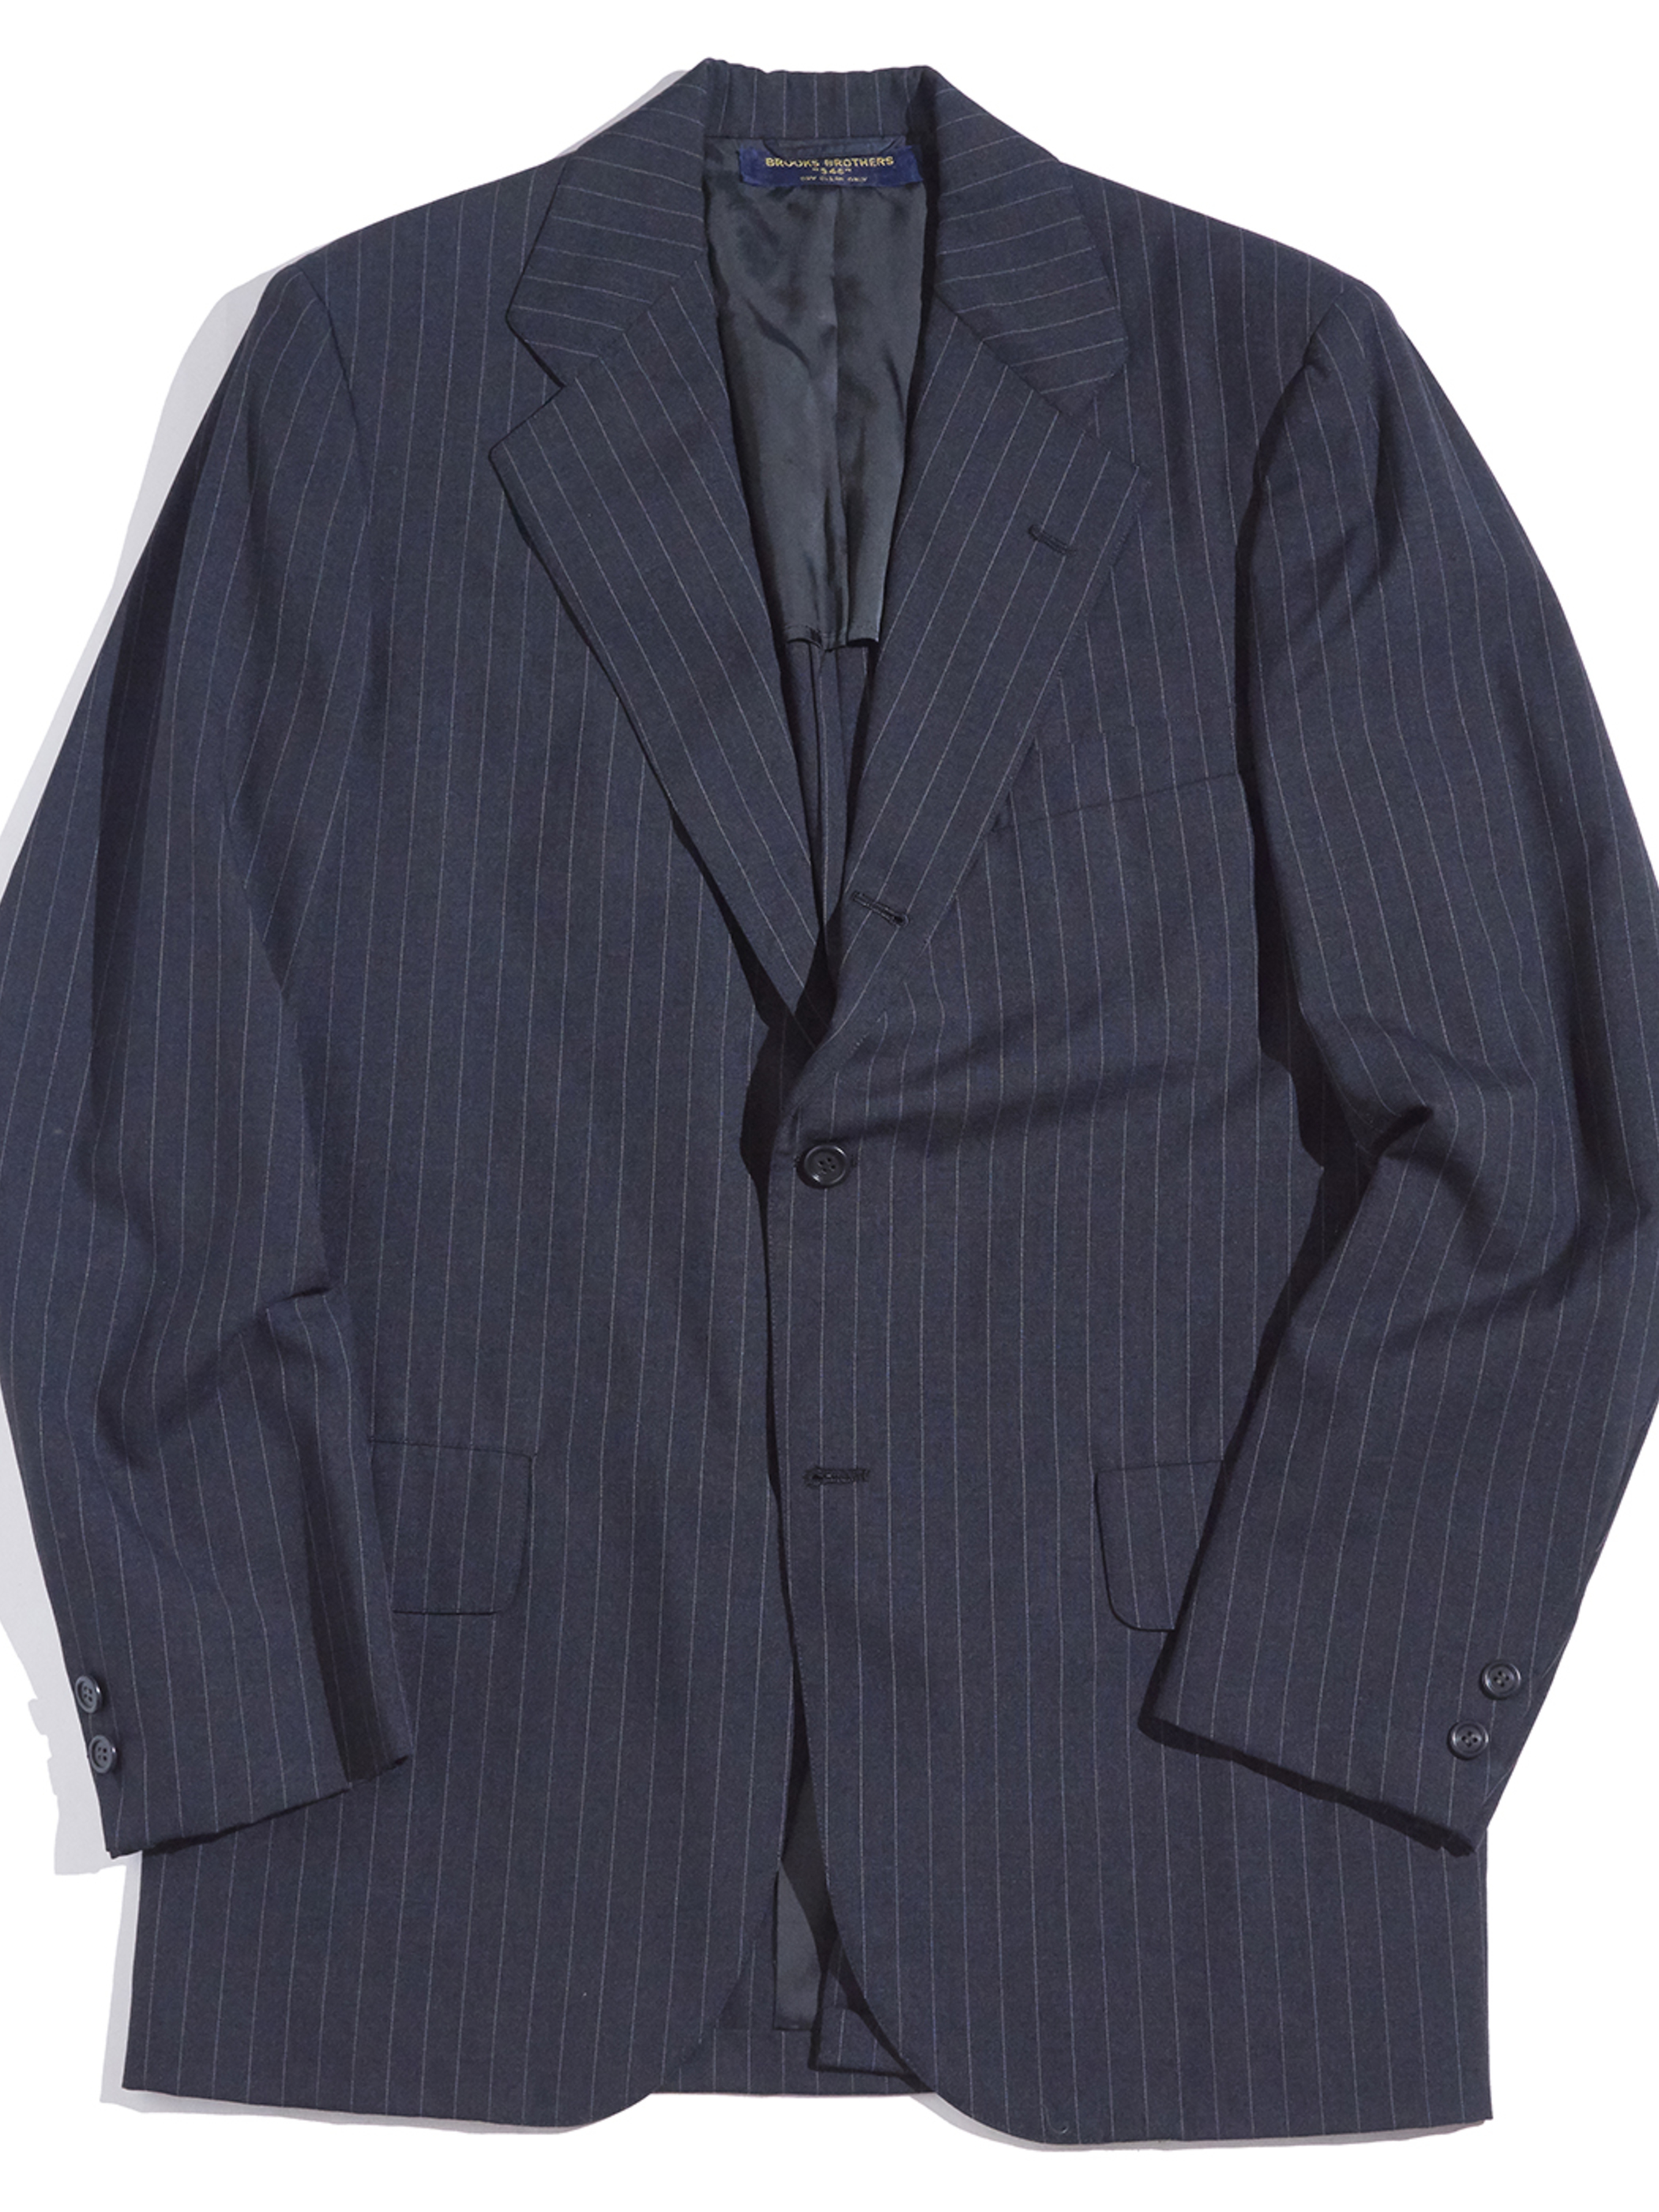 """1980s """"BROOKS BROTHERS"""" 2piece No.1 sack suit -CHACOAL-"""